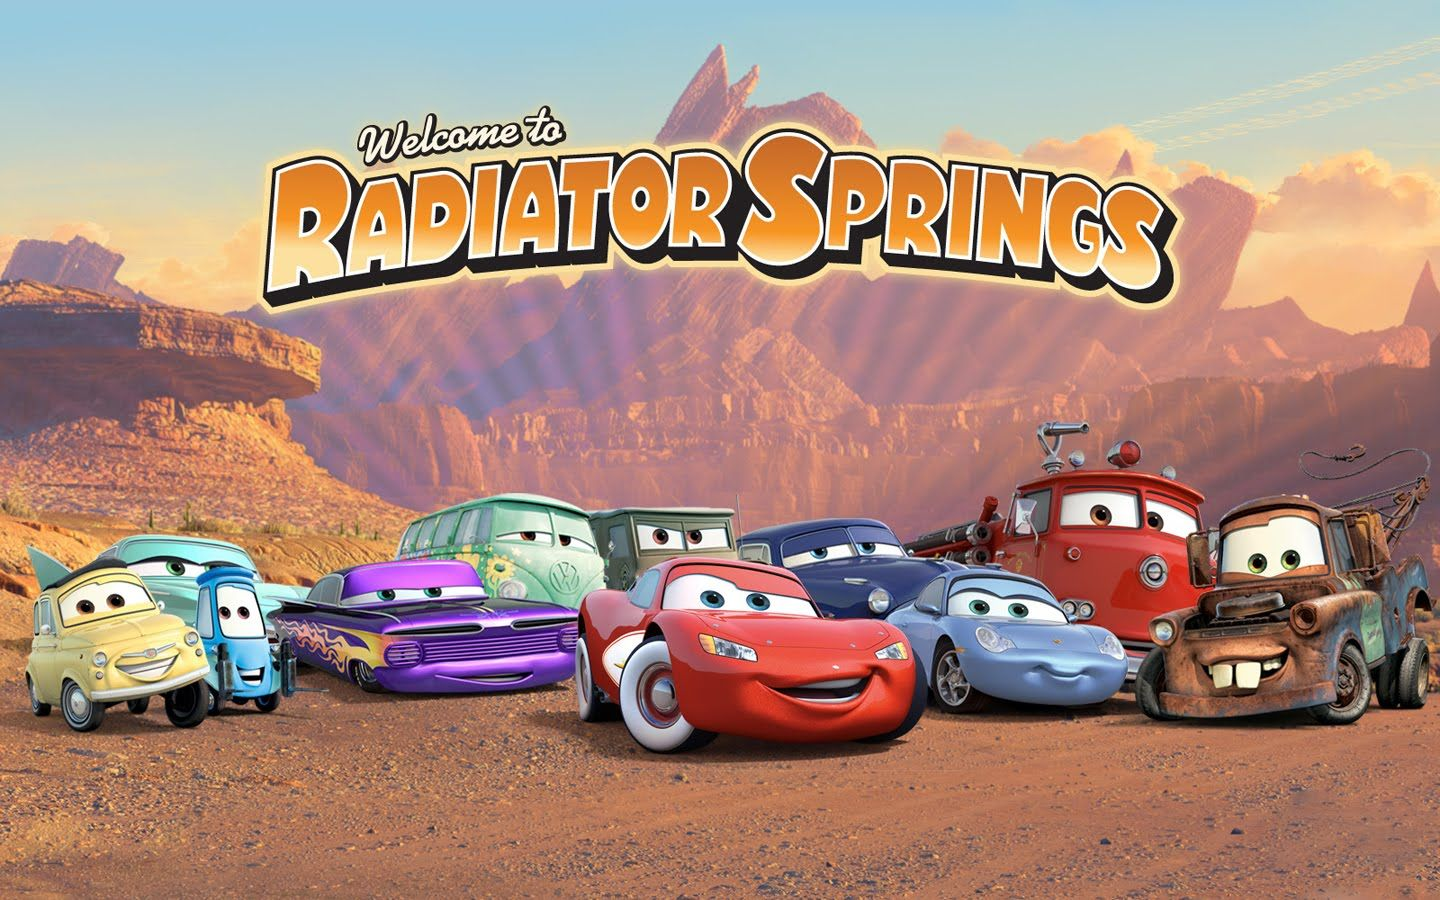 Disney Pixar Cars Radiator Springs Customize Imagecreate Collage